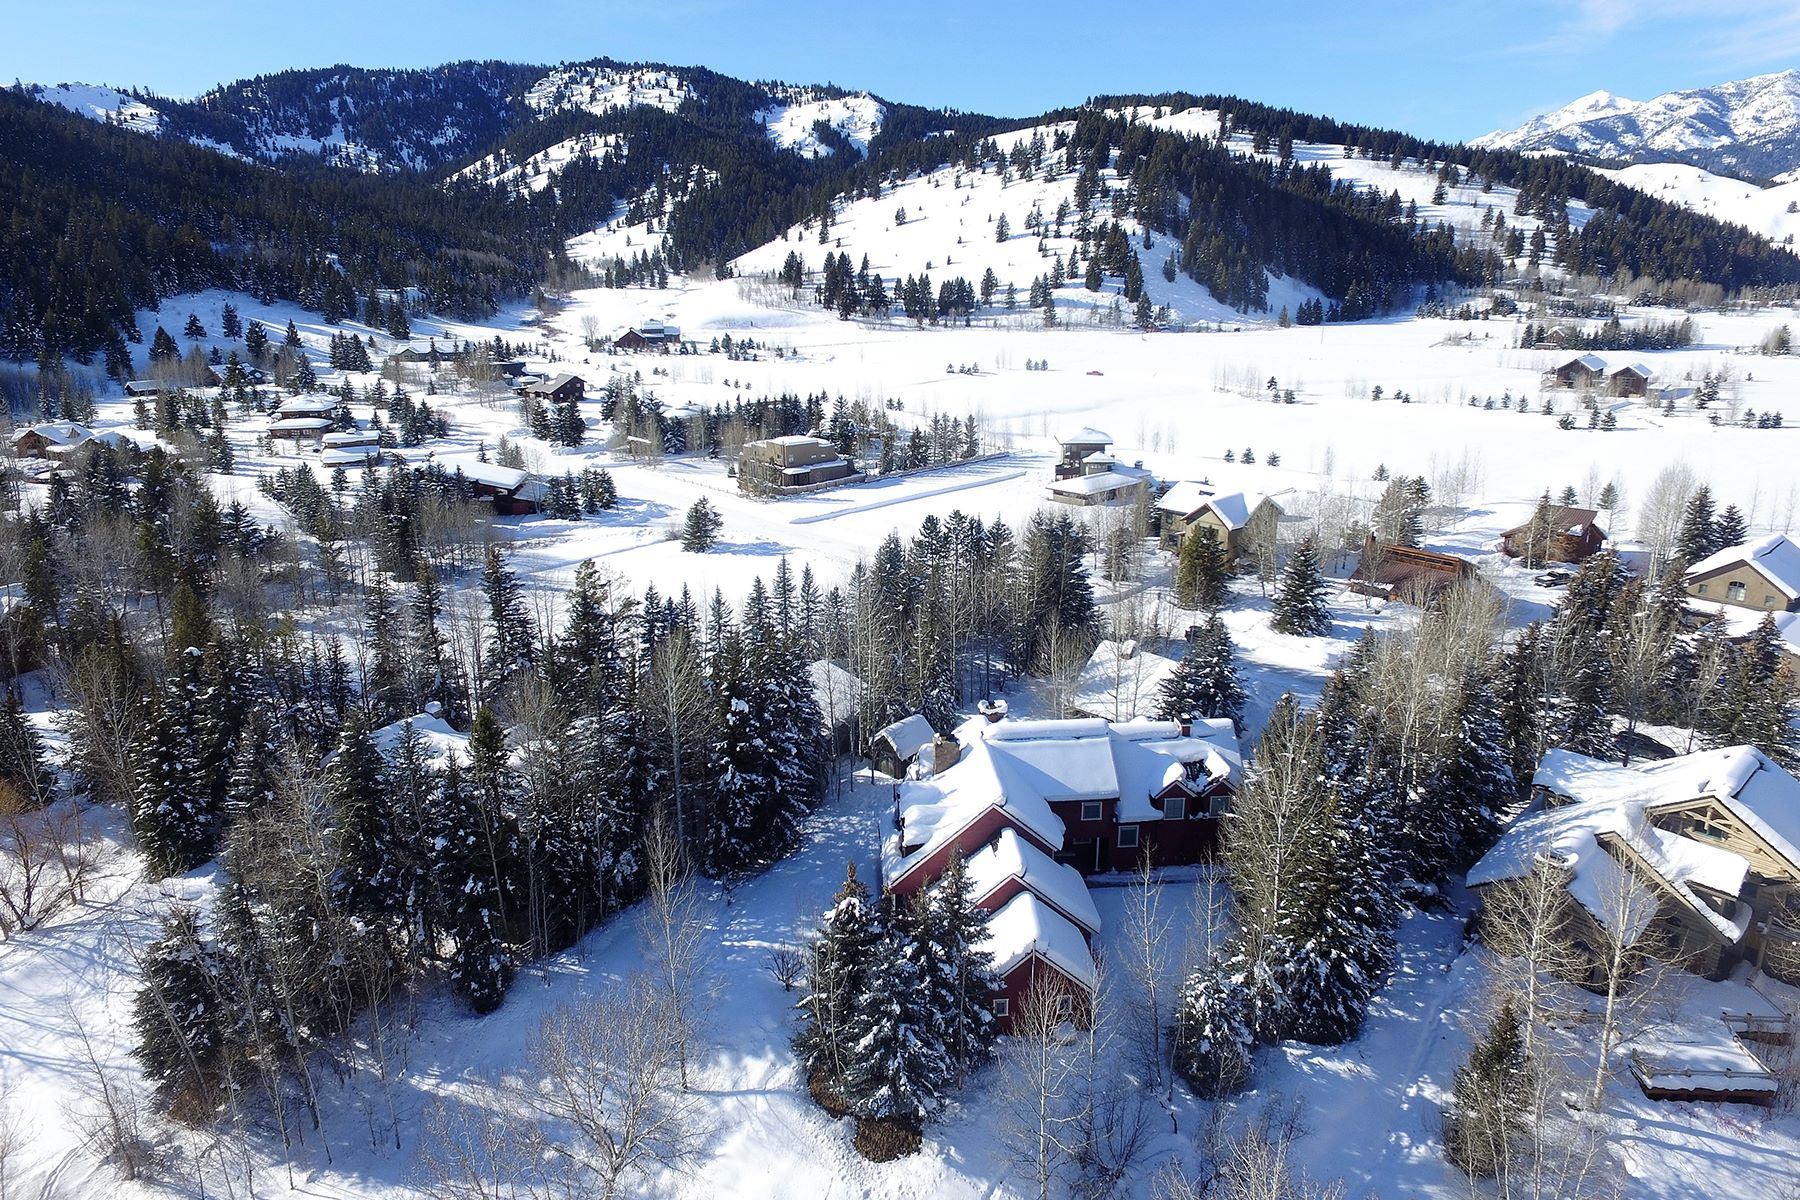 Single Family Home for Active at Charming Riverfront Farmhouse-Inspired Home 107 Chocolate Gulch Rd Ketchum, Idaho 83340 United States